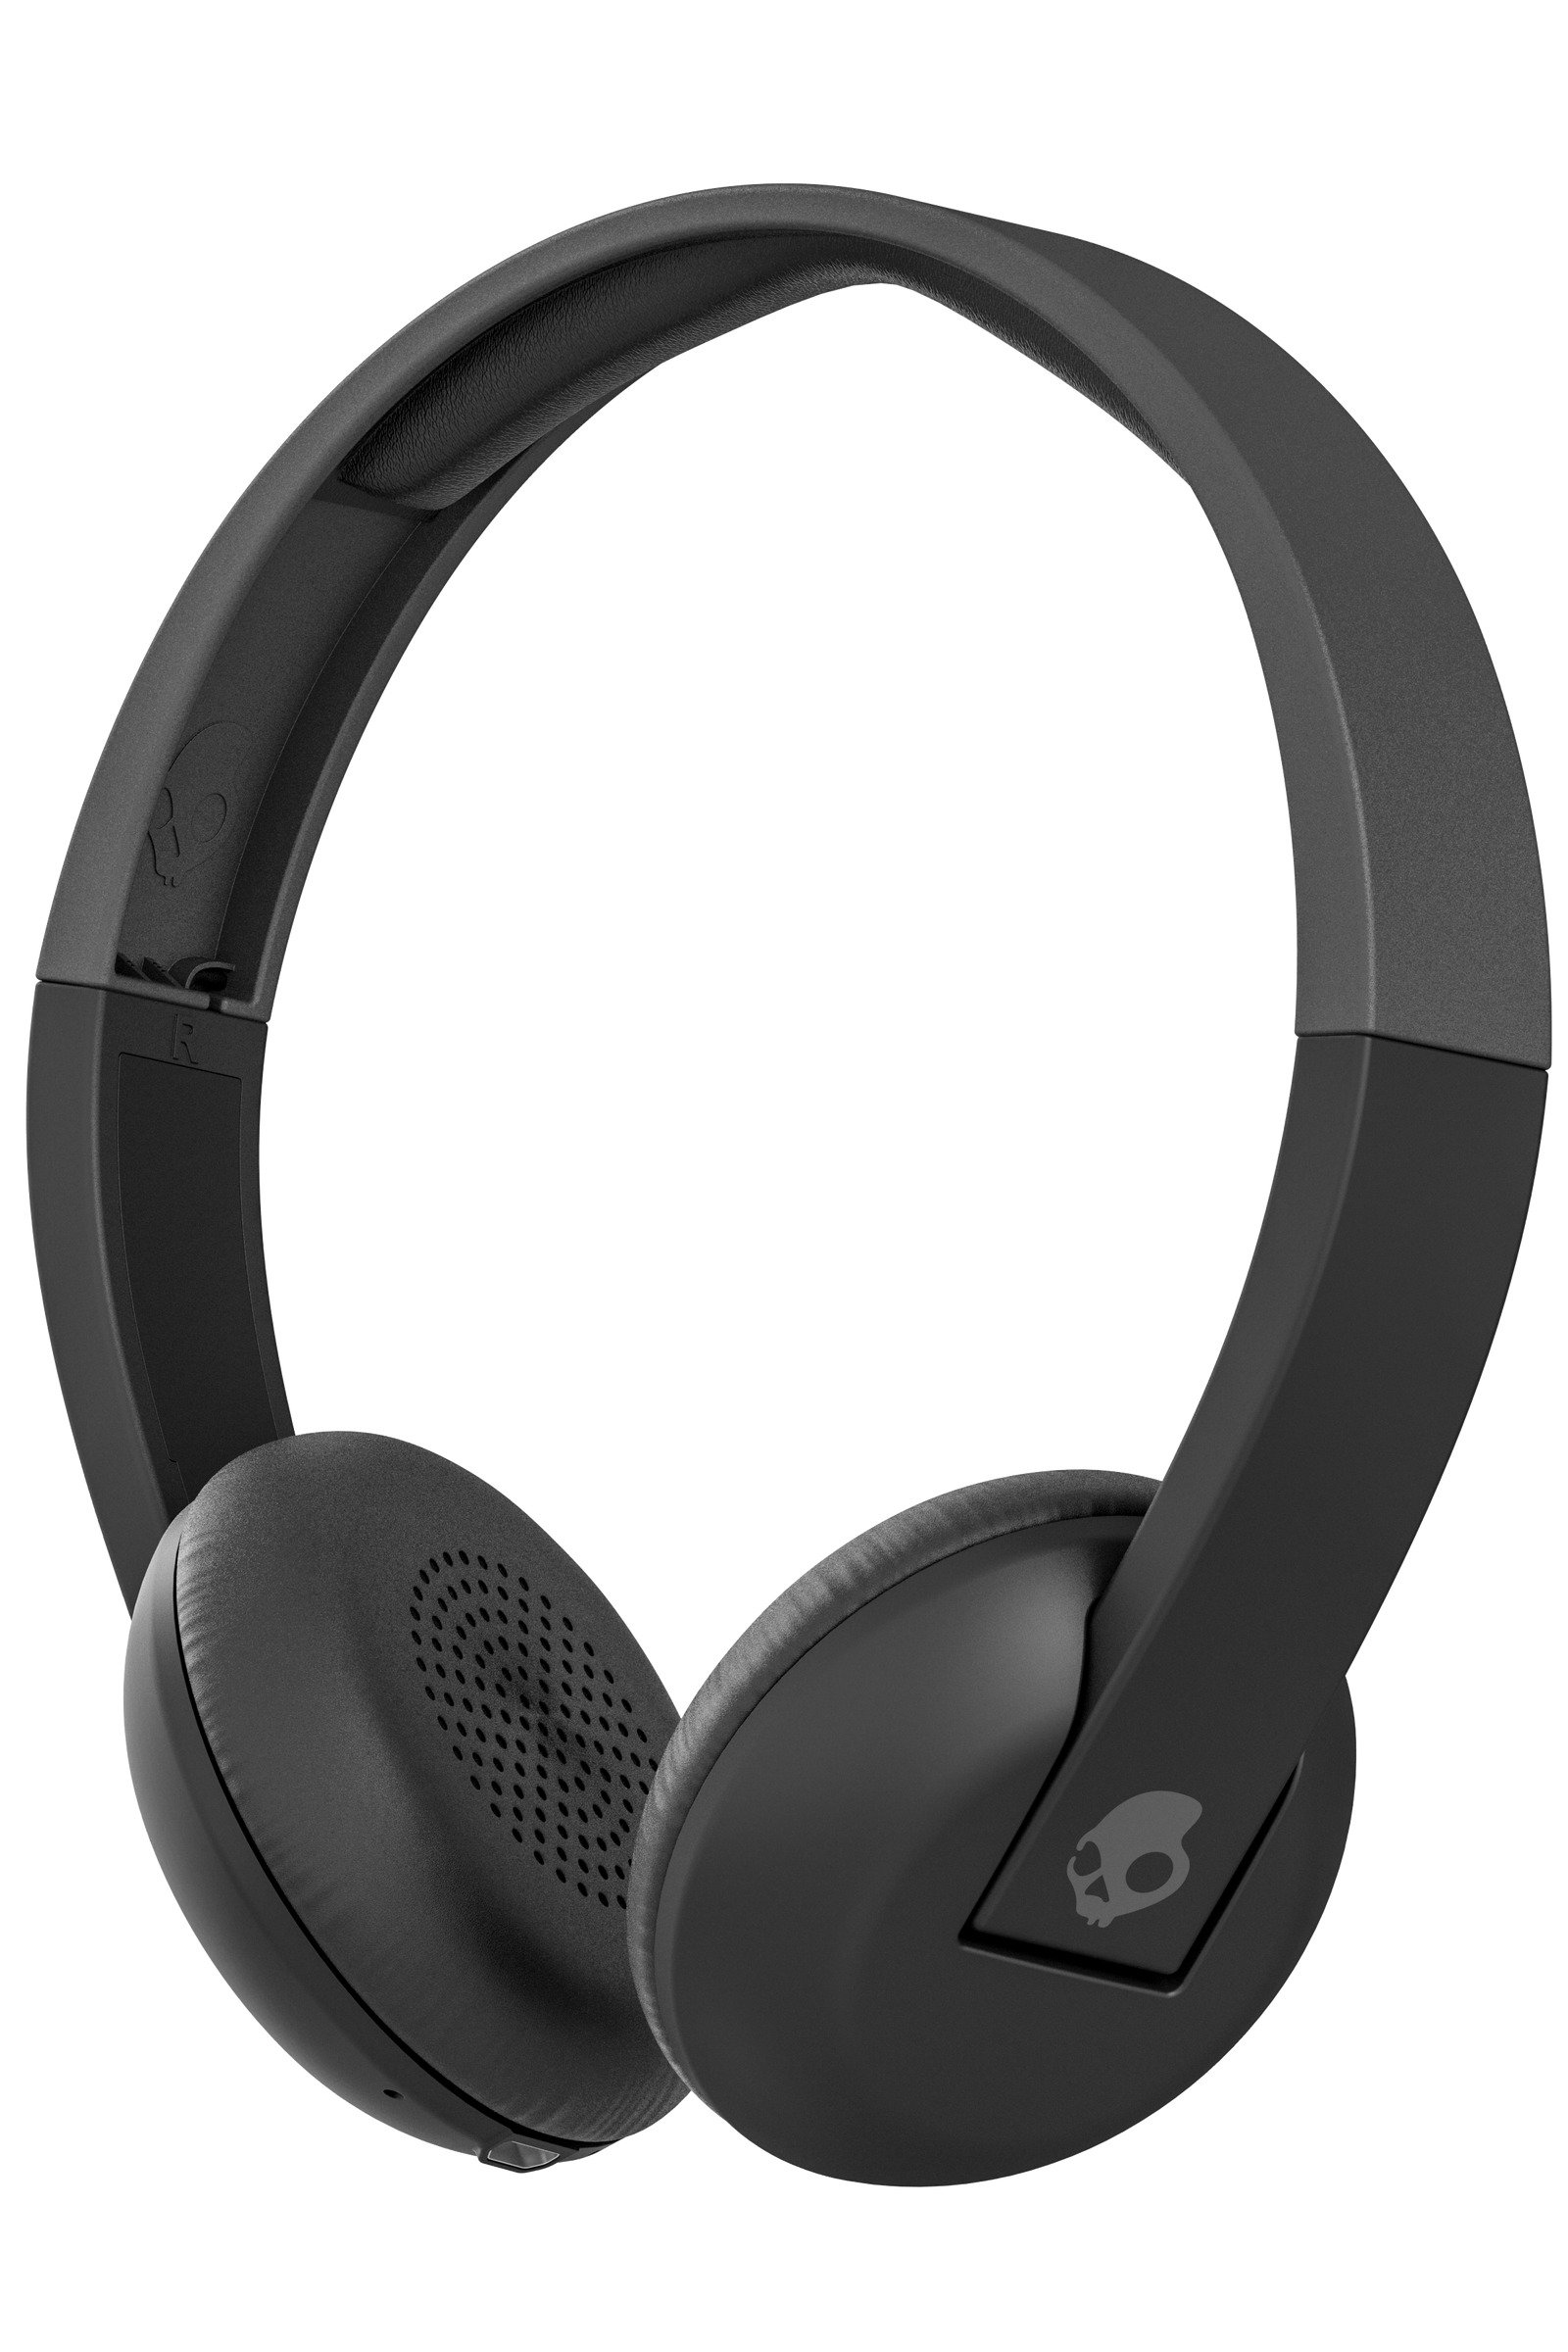 726f27c229f Skullcandy Uproar Bluetooth Wireless On-Ear Headphones with Built-In  Microphone and Remote,